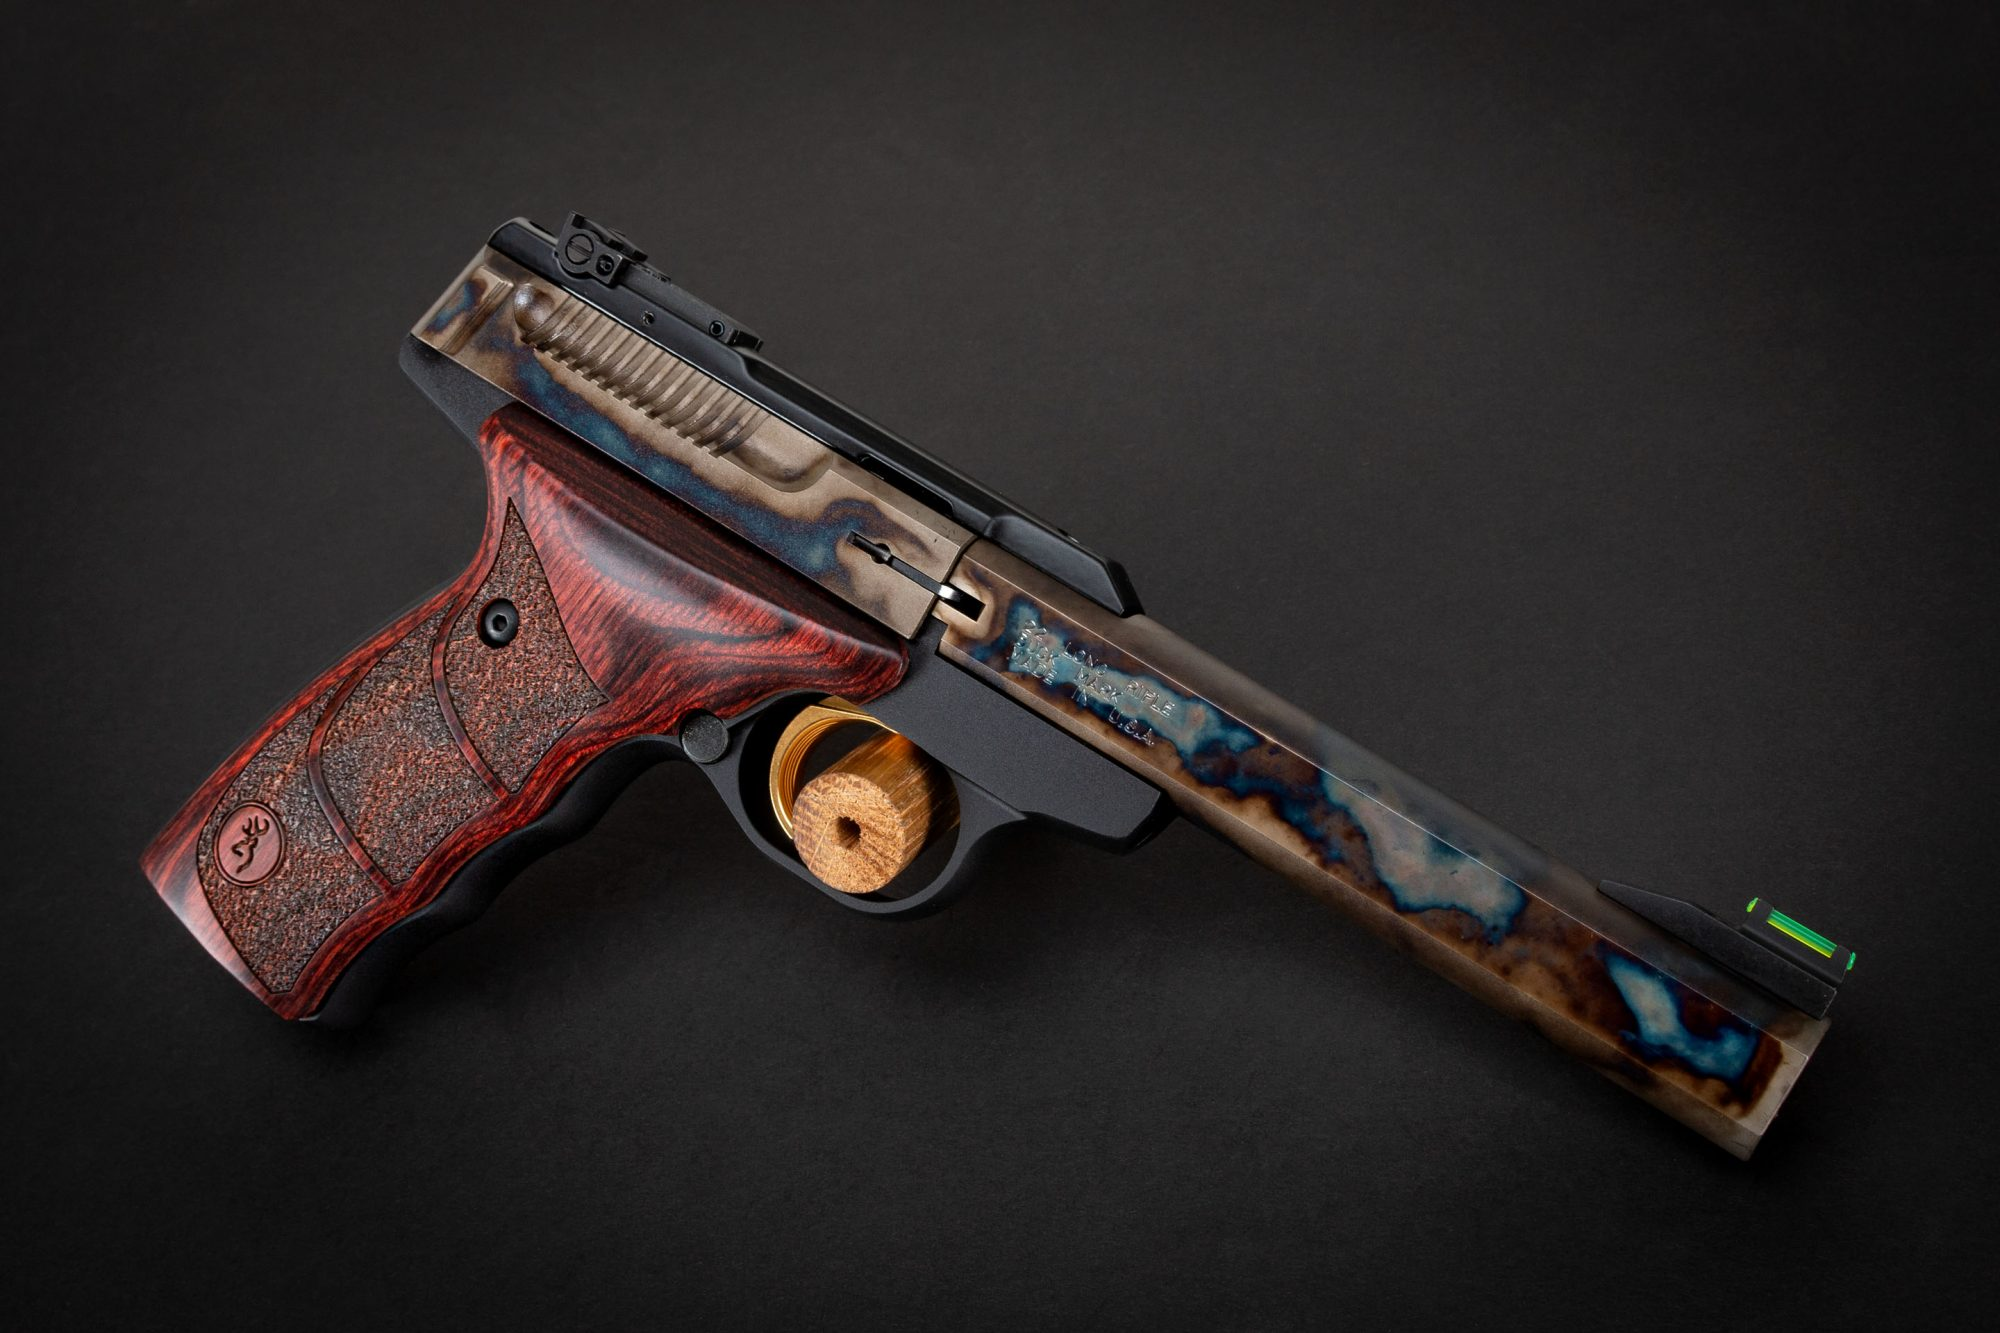 Photo of a Turnbull Finished Browning Buck Mark pistol in .22LR, featuring bone charcoal color case hardening by Turnbull Restoration of Bloomfield, NY